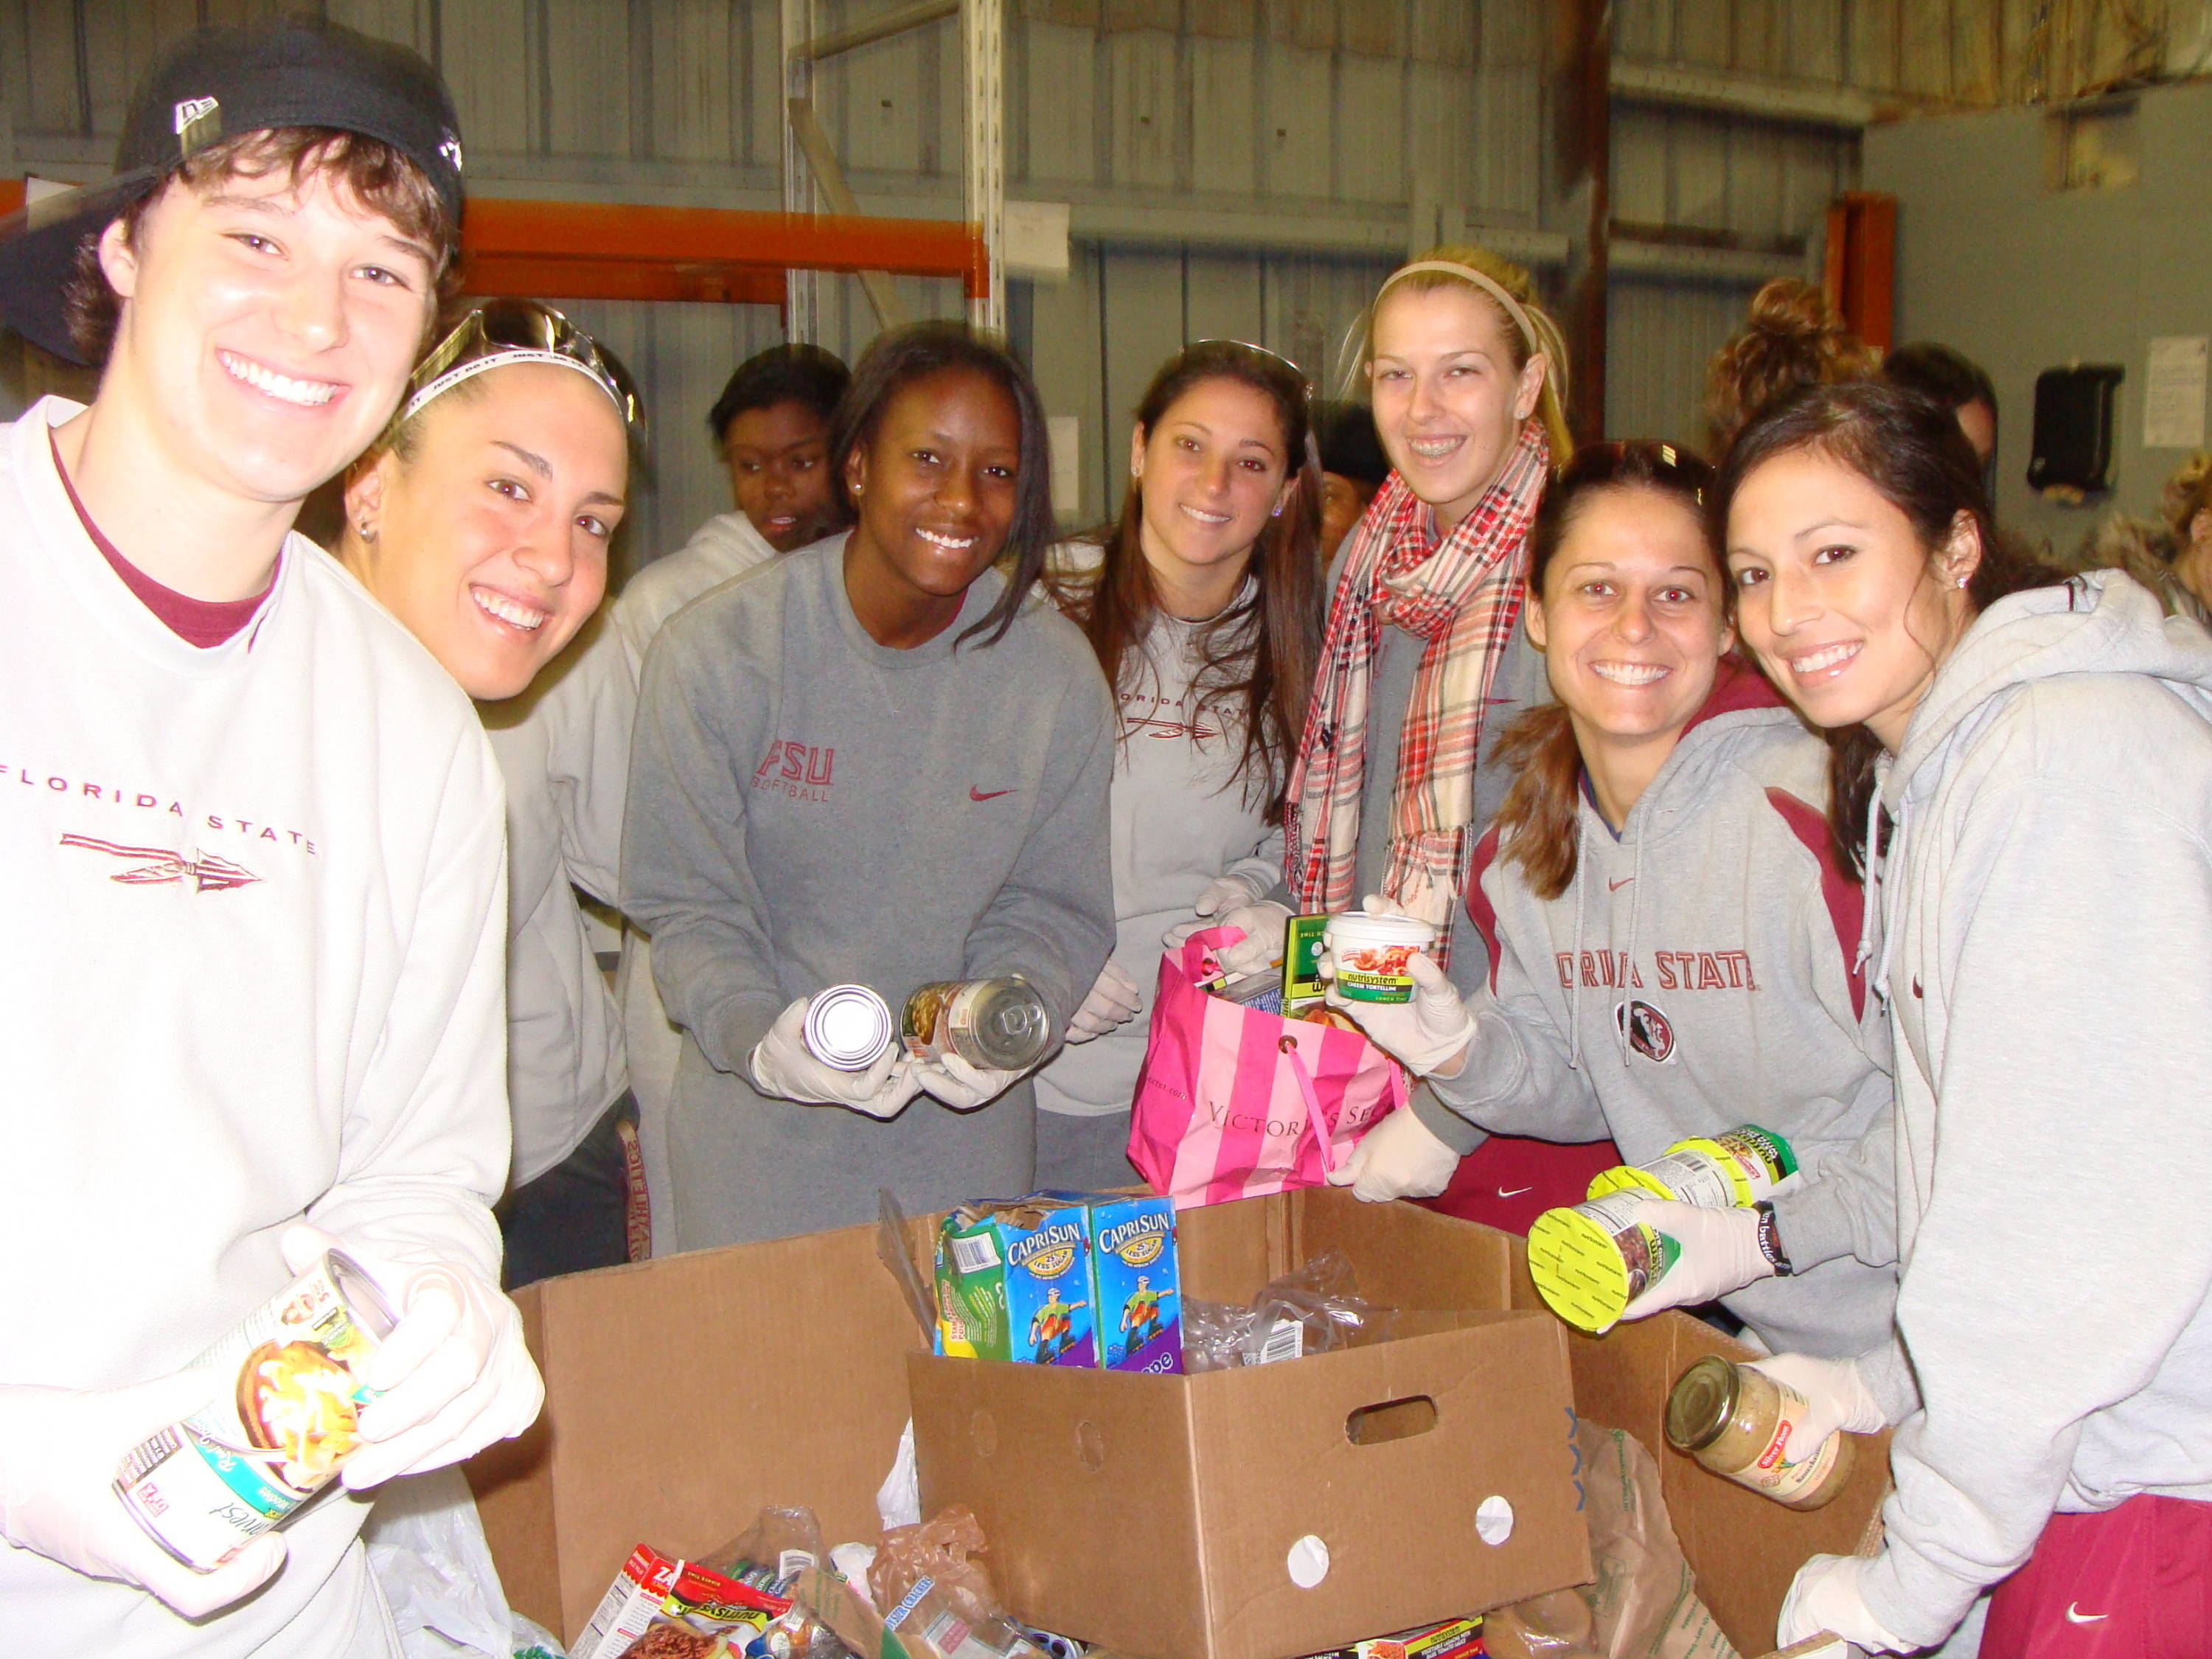 FSU participates in the Holiday Food Drive, just one of its many events